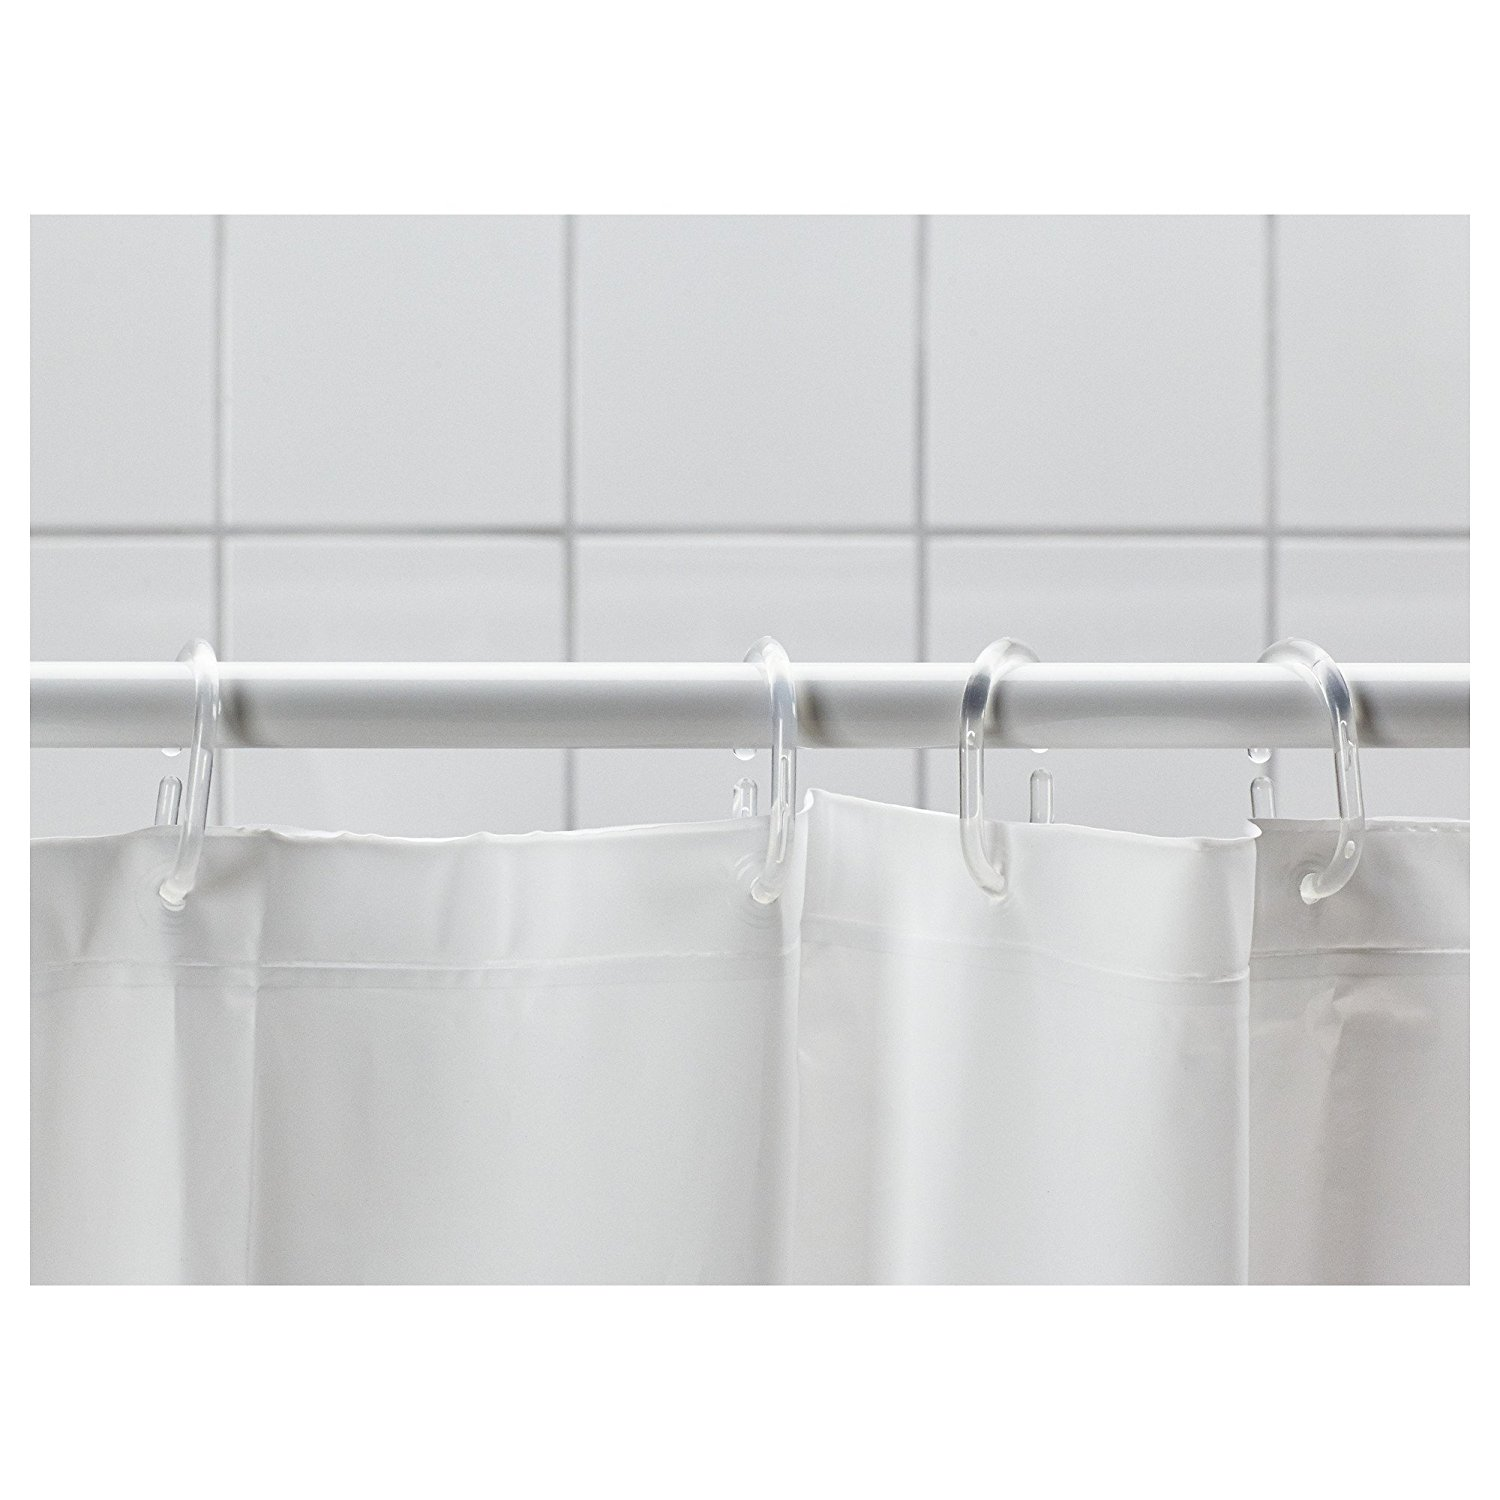 Spring Loaded Curtain Rod Ikea | Shower Curtain Length | Ikea Shower Curtain